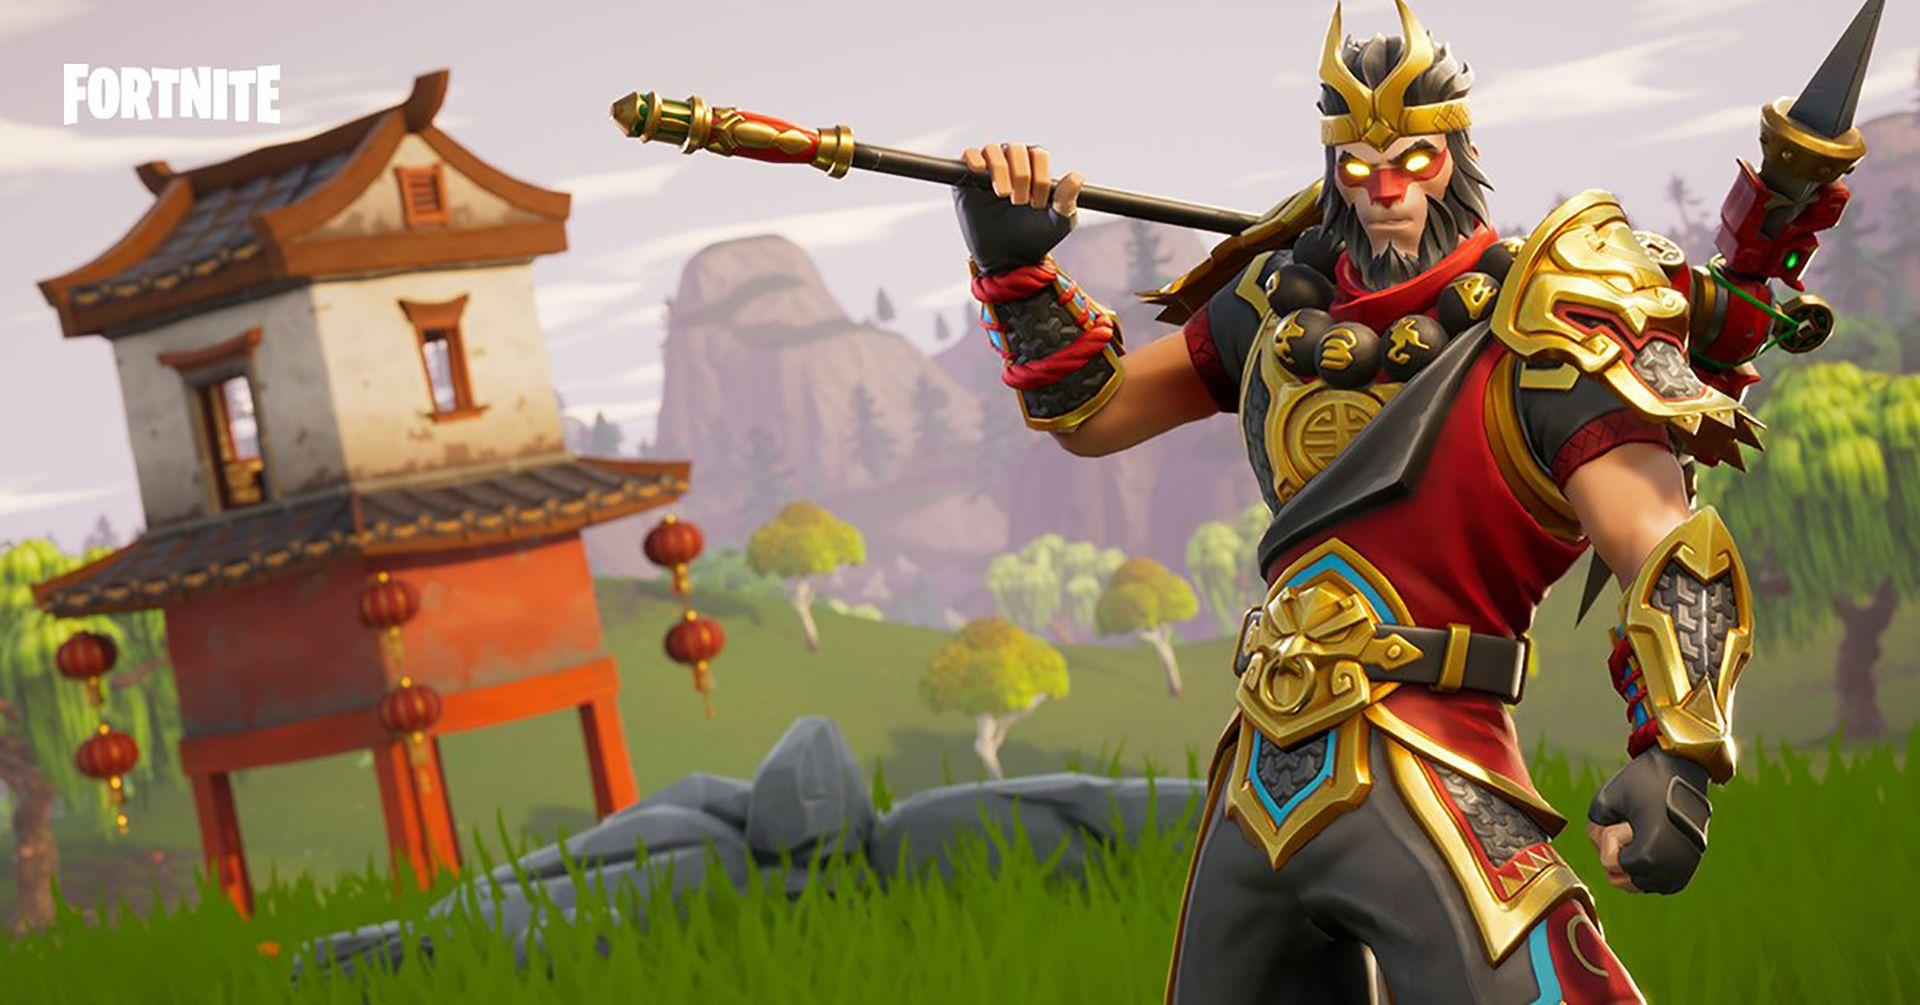 Wukong Fortnite Outfit Skin How to Get + Info